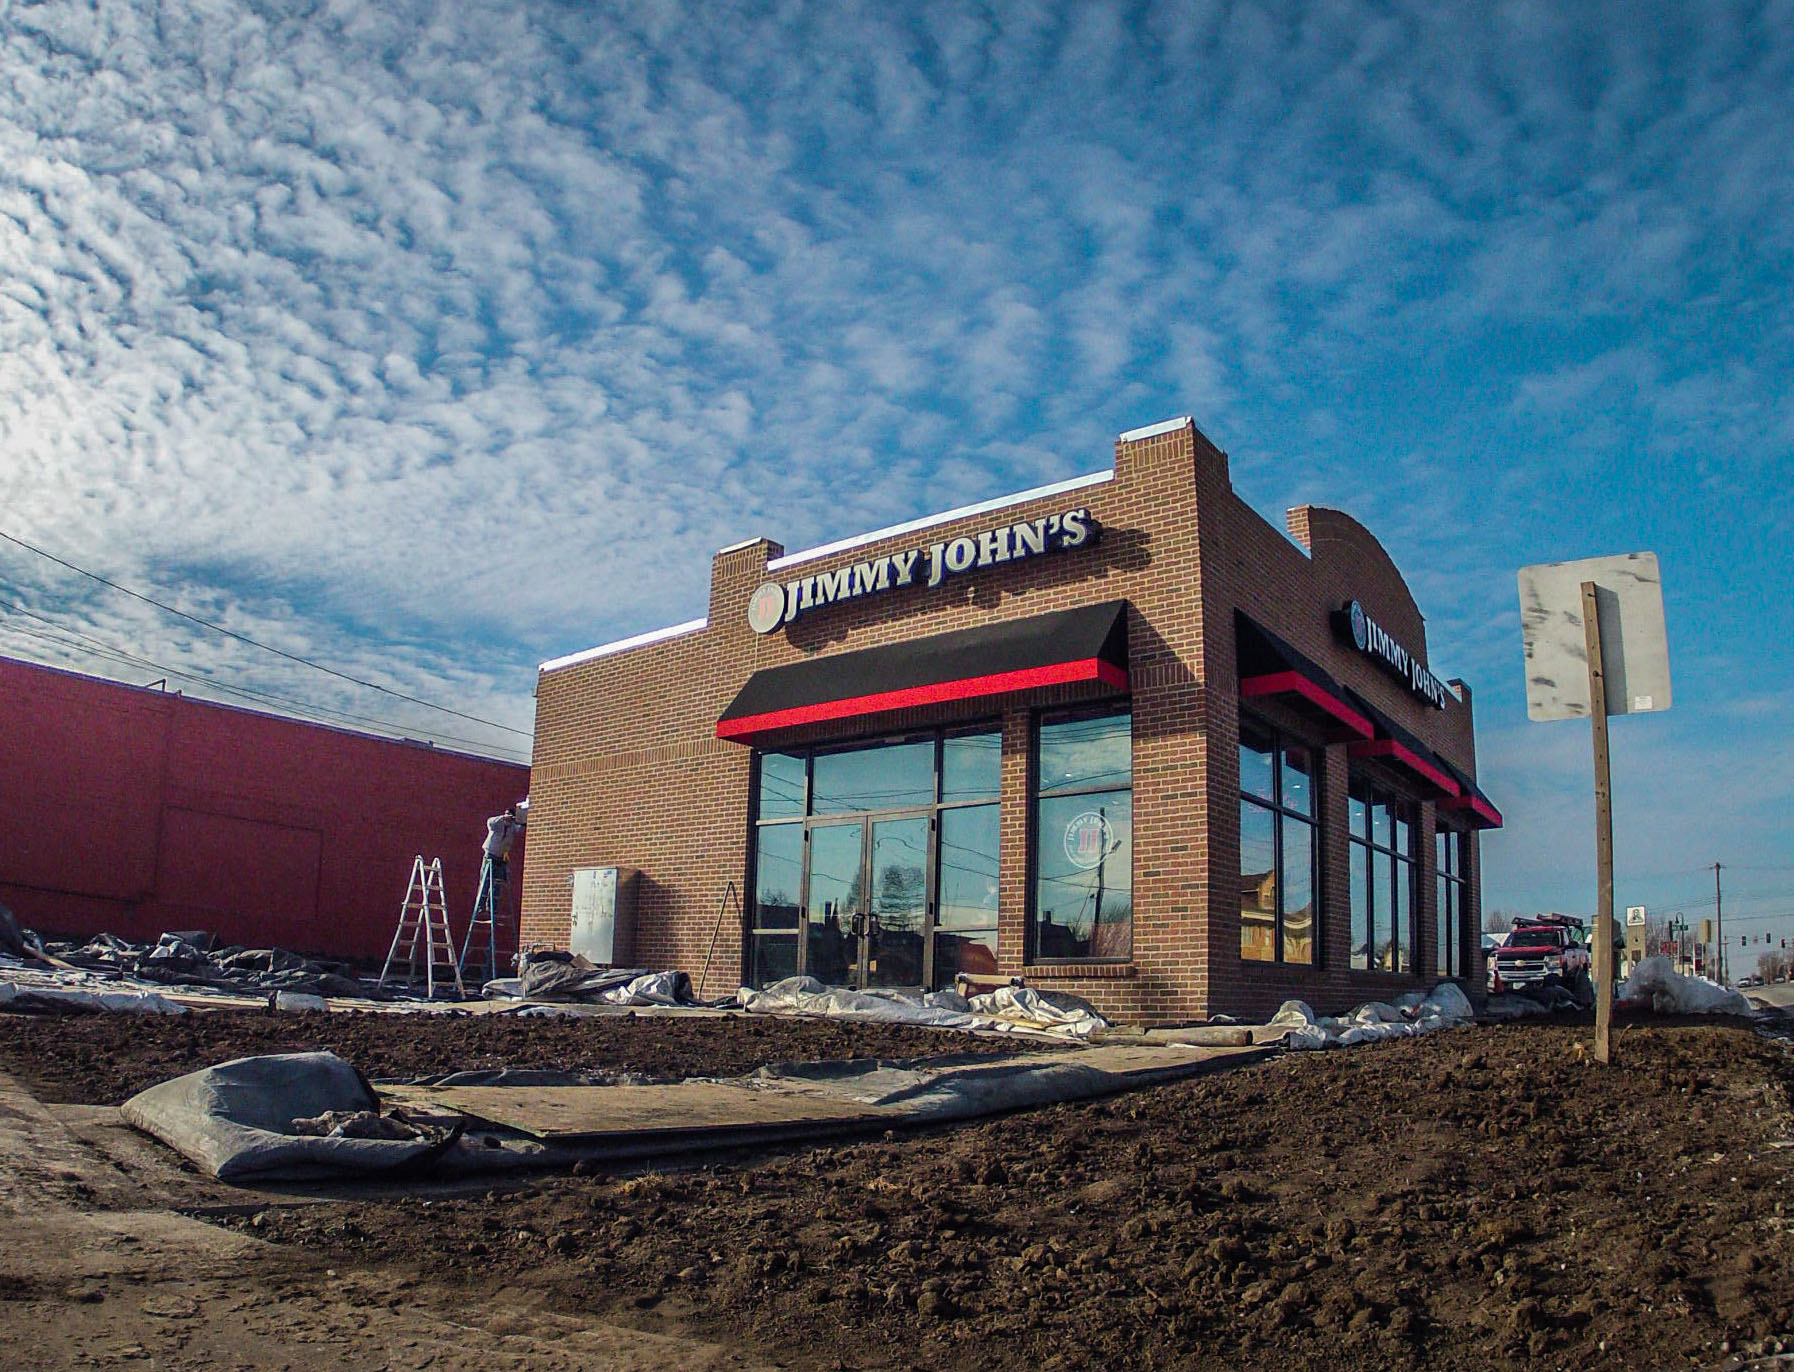 Jimmy John's is now open on 6th and Main. Photograph by John Brady.